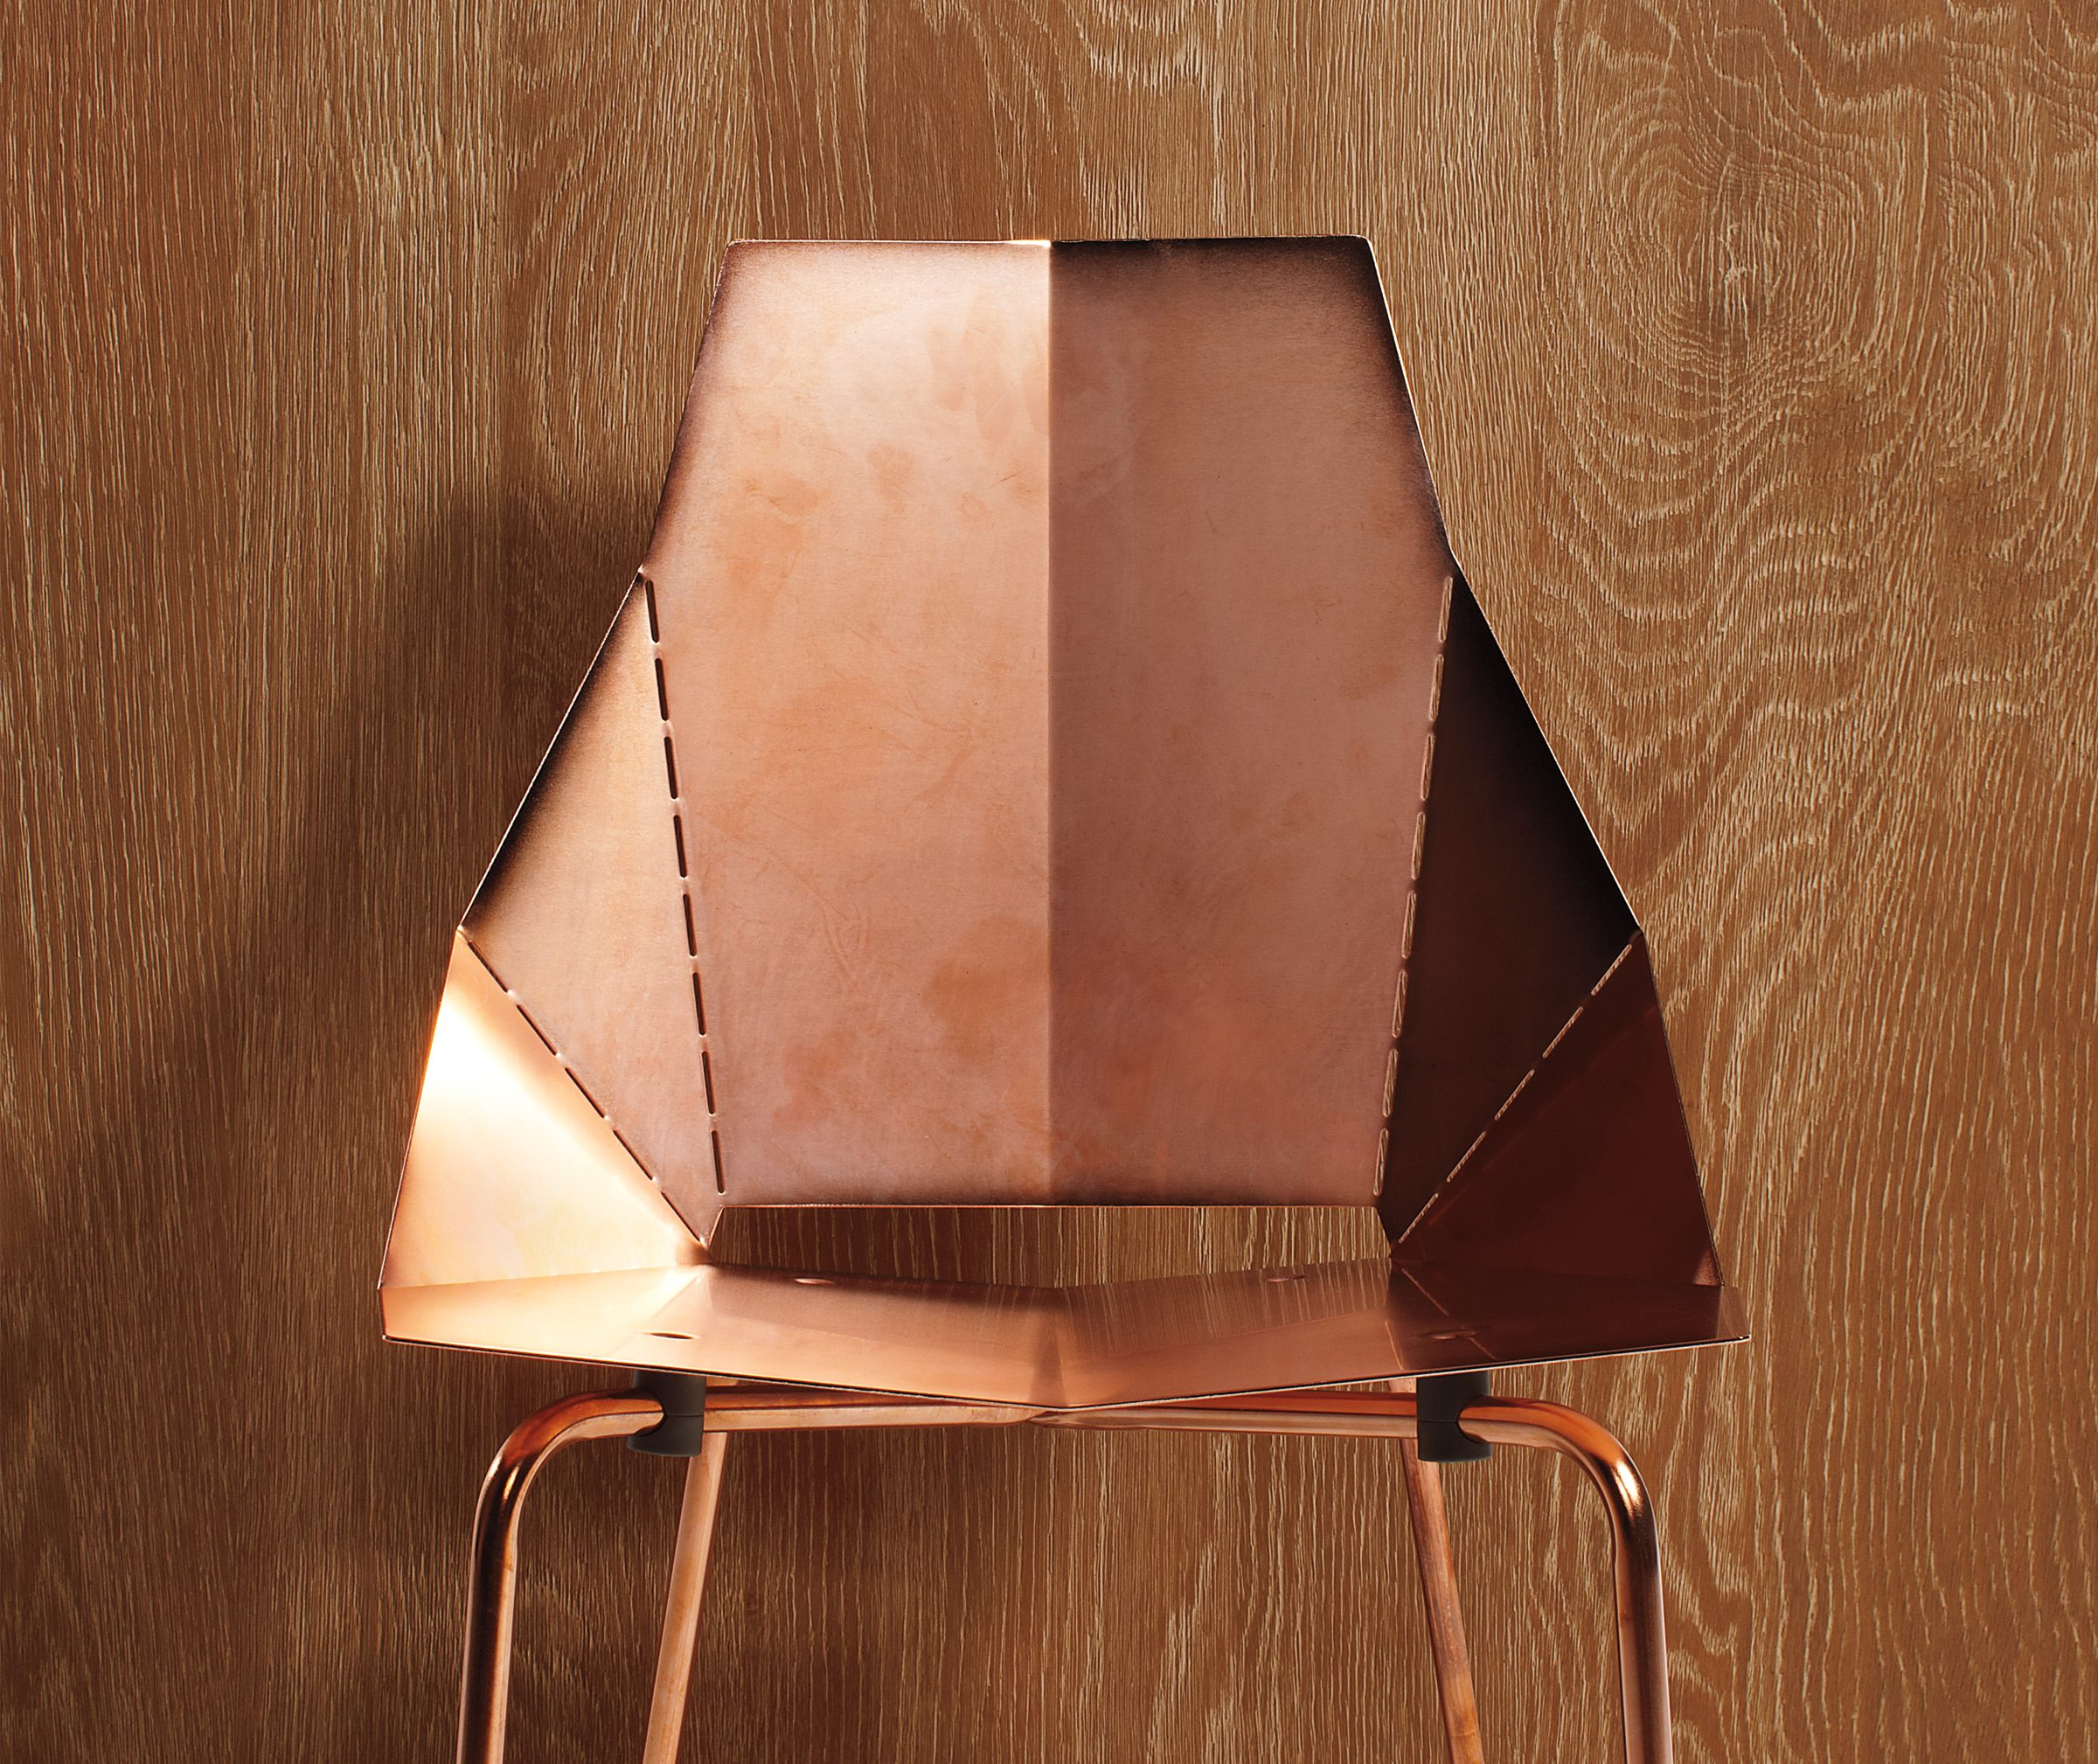 Subscribers to A Modern Space's newsletter will be entered in a draw at the end of August for a Blu Dot copper Real Good chair